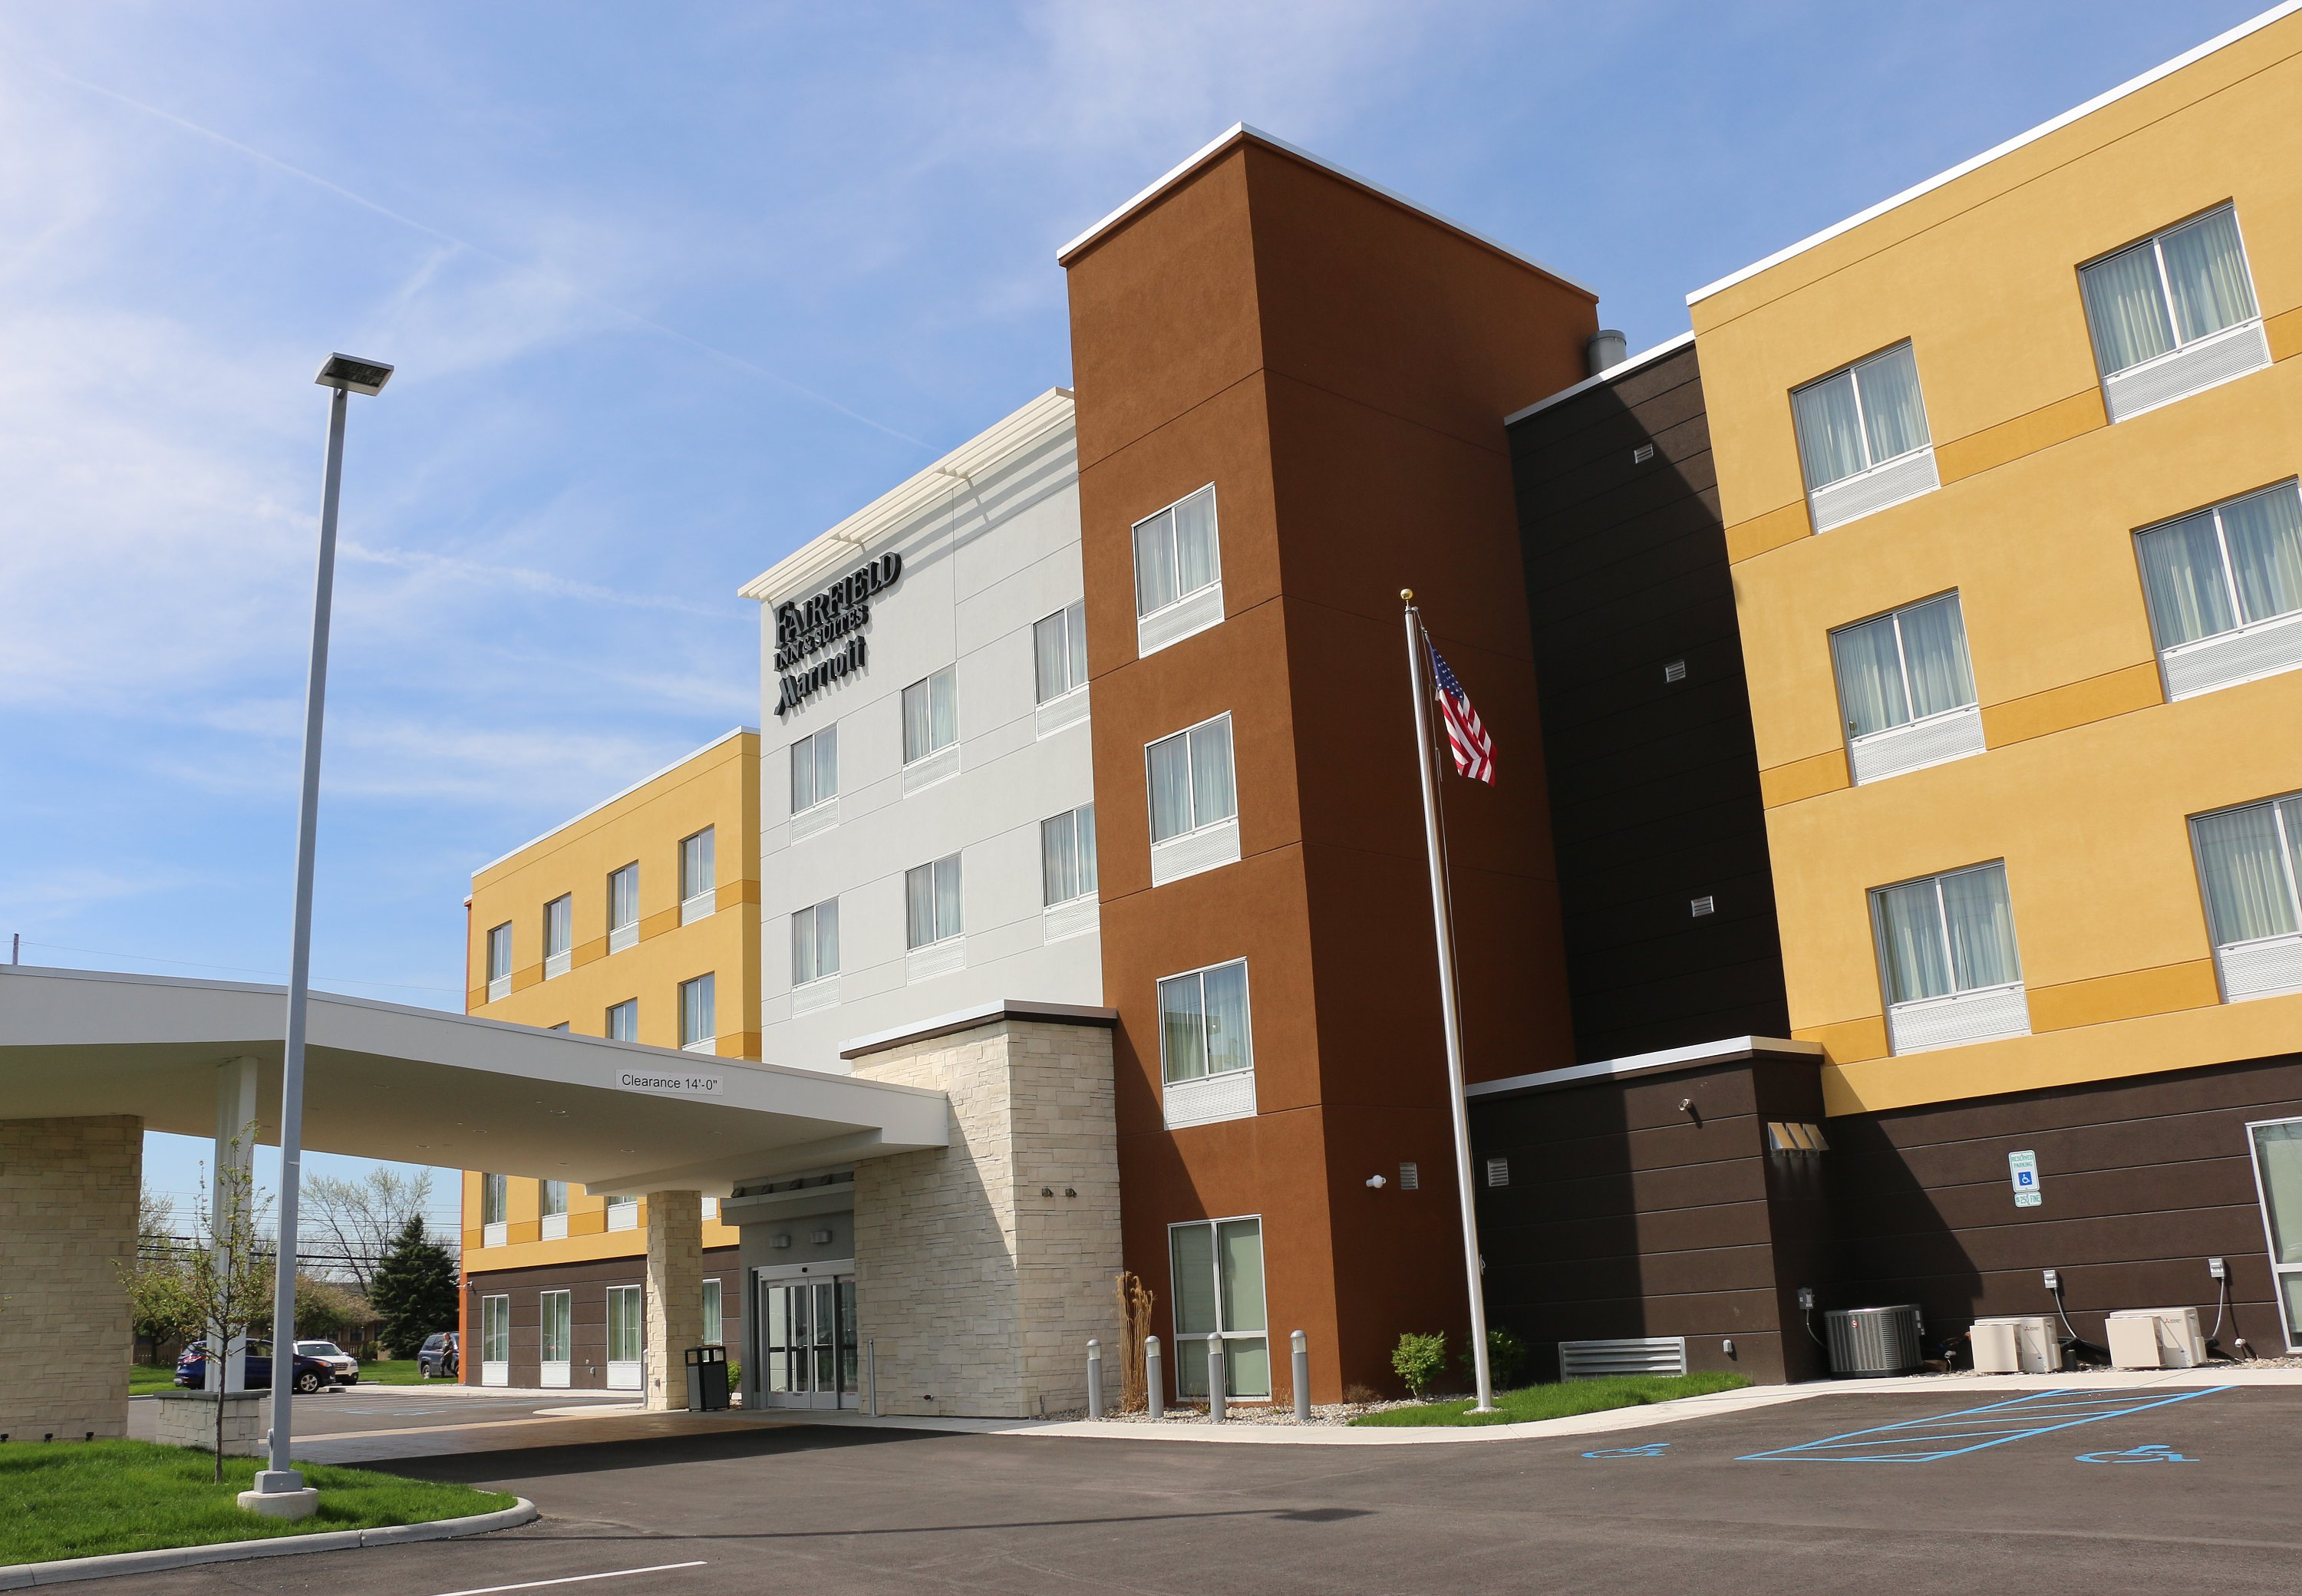 Fairfield Inn & Suites by Marriott Bowling Green image 0